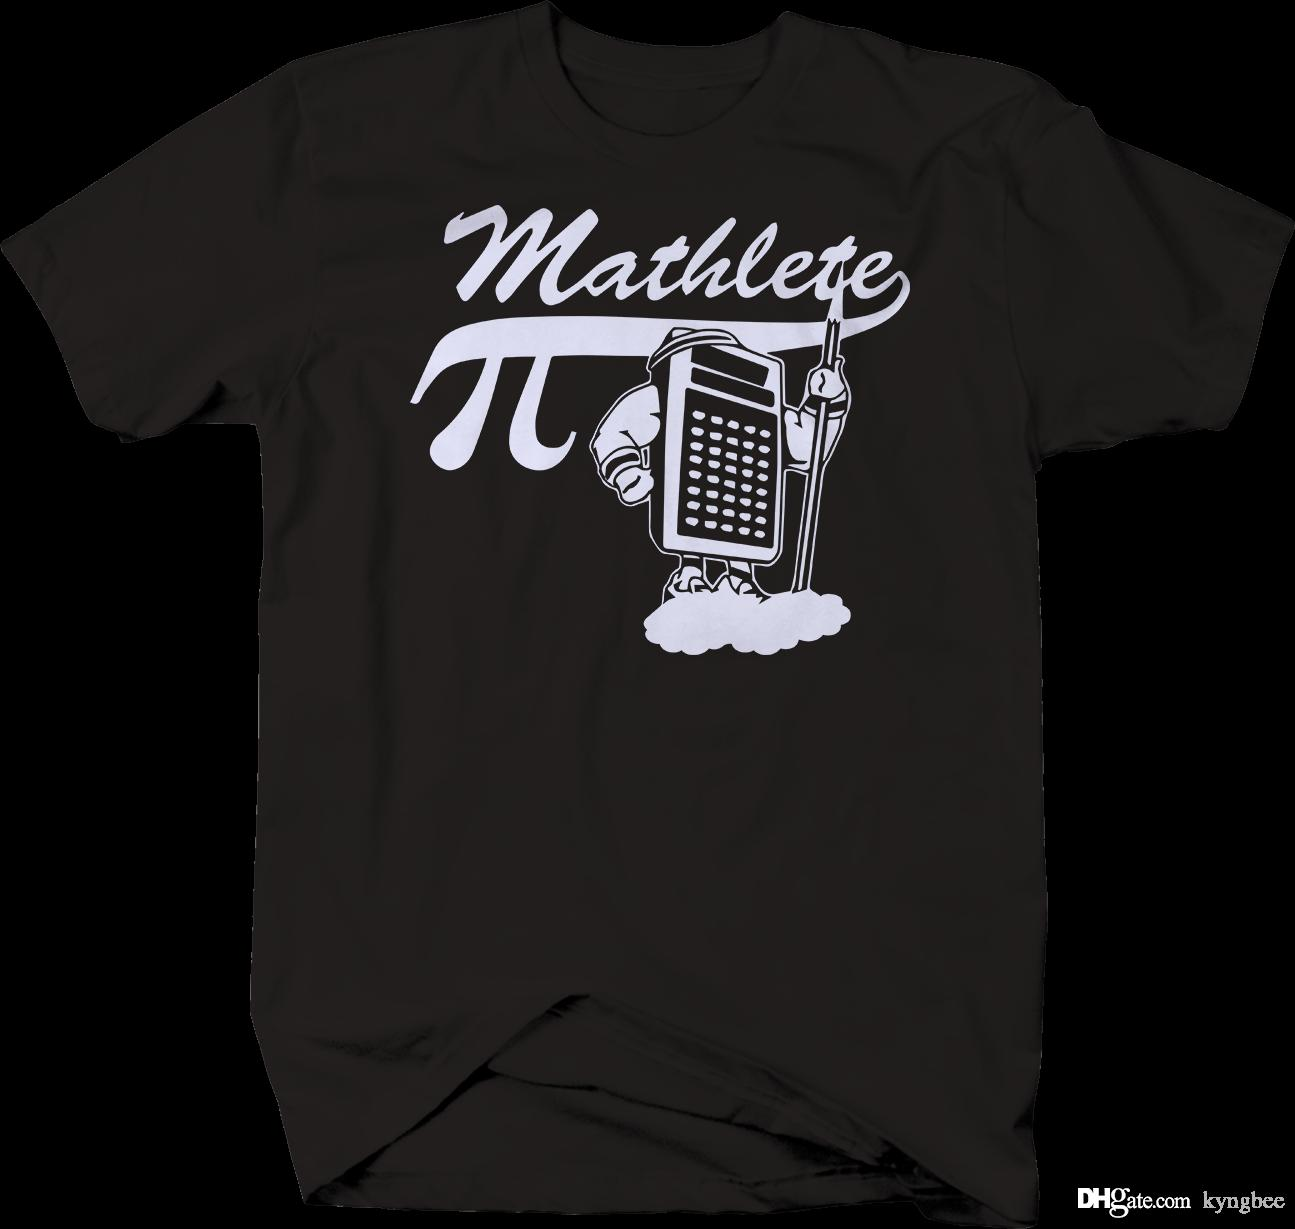 566ddedc0 Mathlete Math Olympics Pi Calculator Nerd Funny T Shirt T Shirts Sale  Novelty Shirts From Kyngbee, $10.72| DHgate.Com